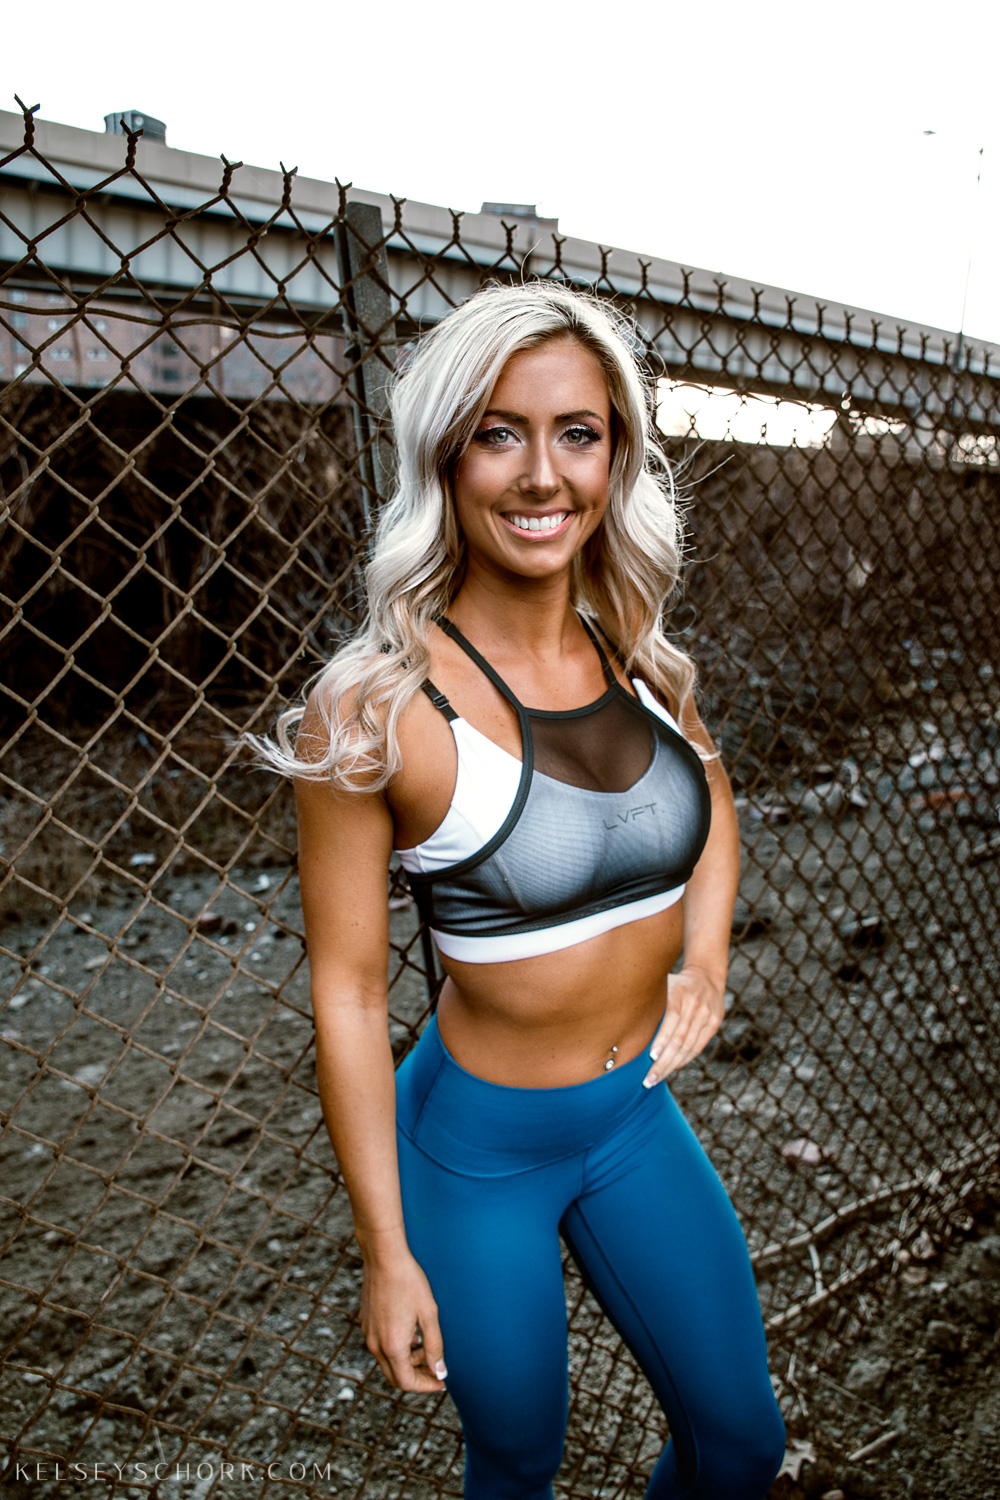 Erin_fitness_photoshoot-15.jpg